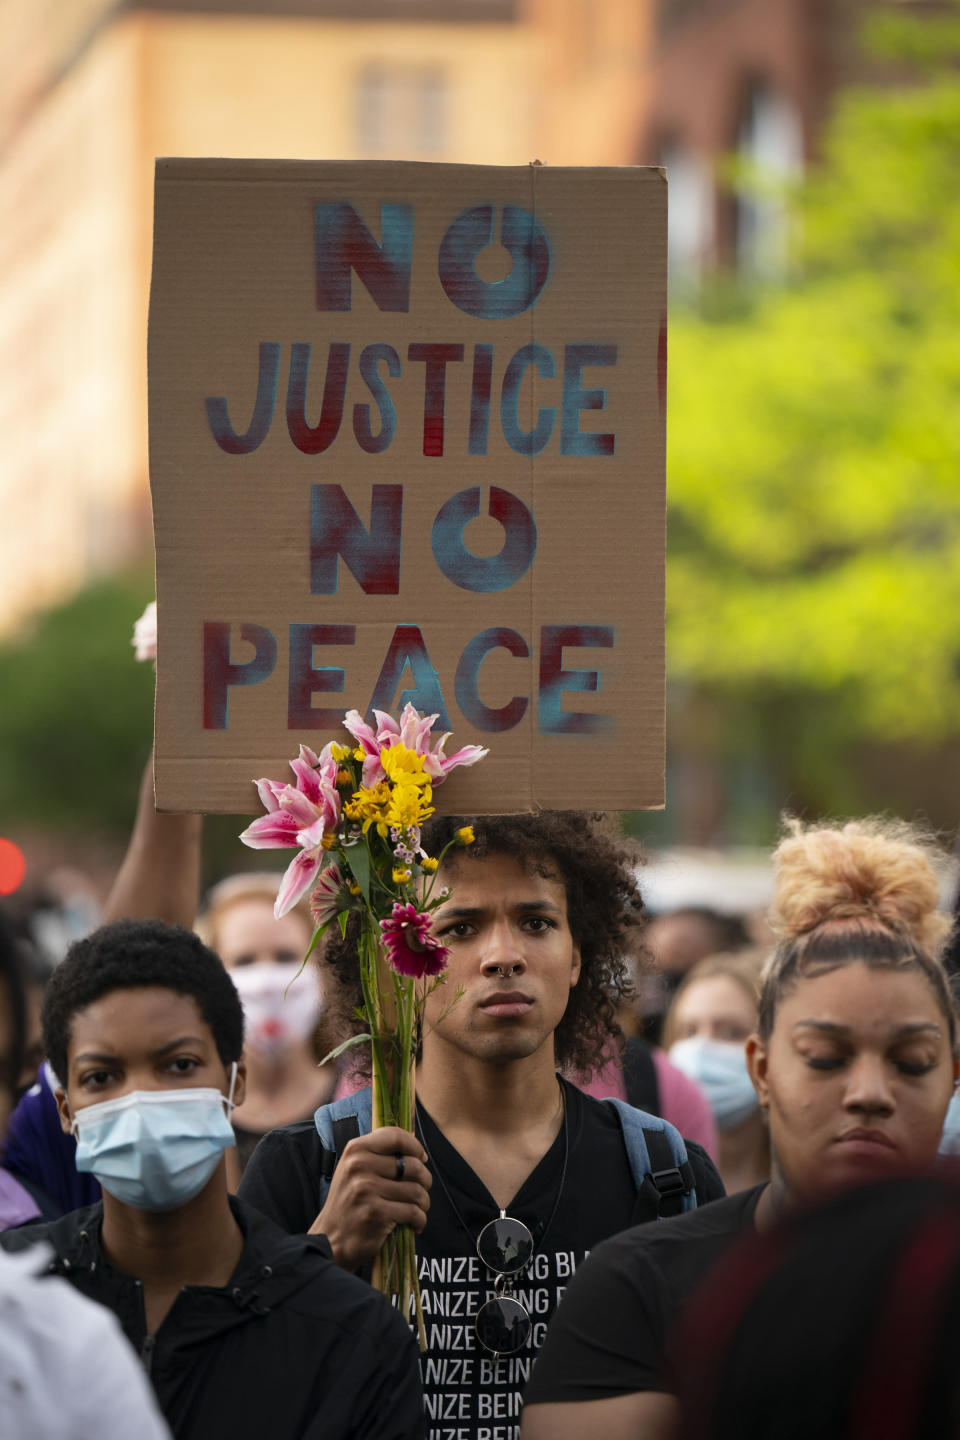 People listen to a speaker during a rally and march in downtown Minneapolis, Sunday, May 23, 2021. Members of George Floyd's family, and others who lost loved ones to police encounters, joined activists and citizens in Minneapolis for a march that was one of several events planned nationwide to mark the one-year anniversary of Floyd's death. (Jeff Wheeler/Star Tribune via AP)